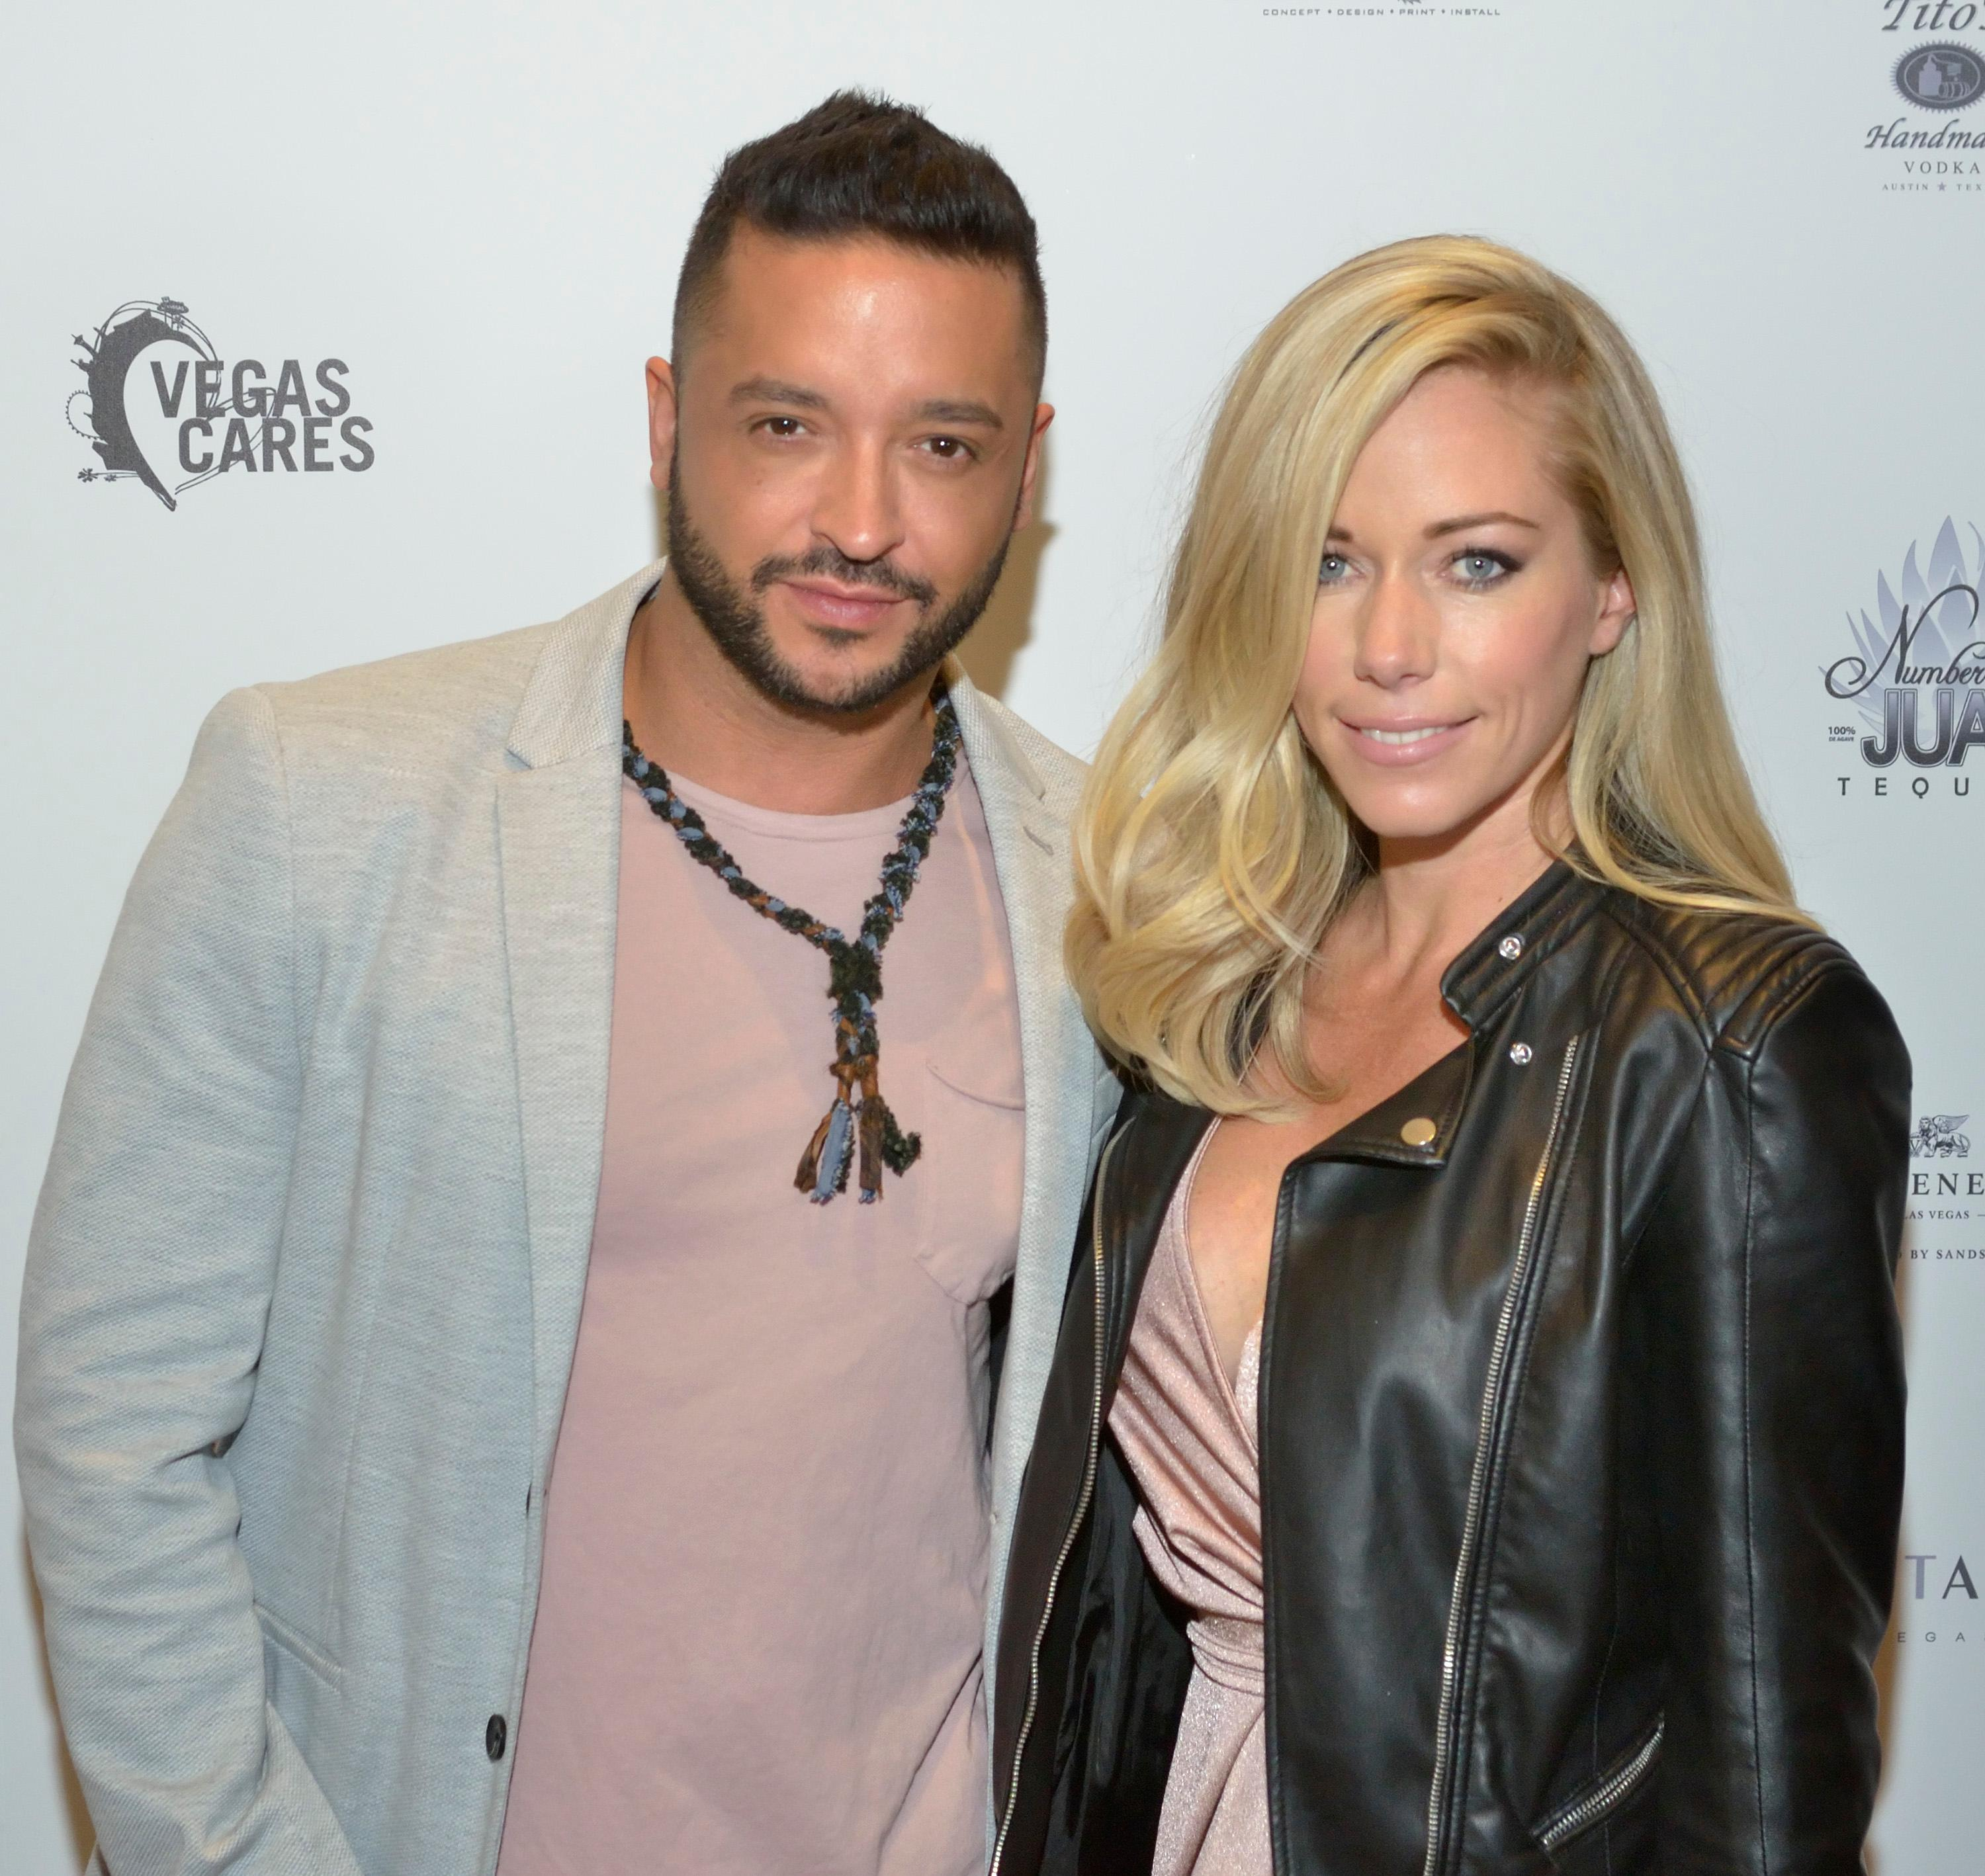 "Jai Rodriguez and Kendra Wilkinson are shown at the ""Vegas Cares"" benefit concert at the Venetian Theatre in the Venetian hotel-casino at 3355 S. Las Vegas Blvd in Las Vegas on Sunday, Nov 5, 2017. The concert was sponsored by a group of Las Vegas entertainers, producers and business professionals to honor the victims and first responders from shooting at the Route 91 Harvest festival. (Photo/Las Vegas News Bureau/Bill Hughes)"